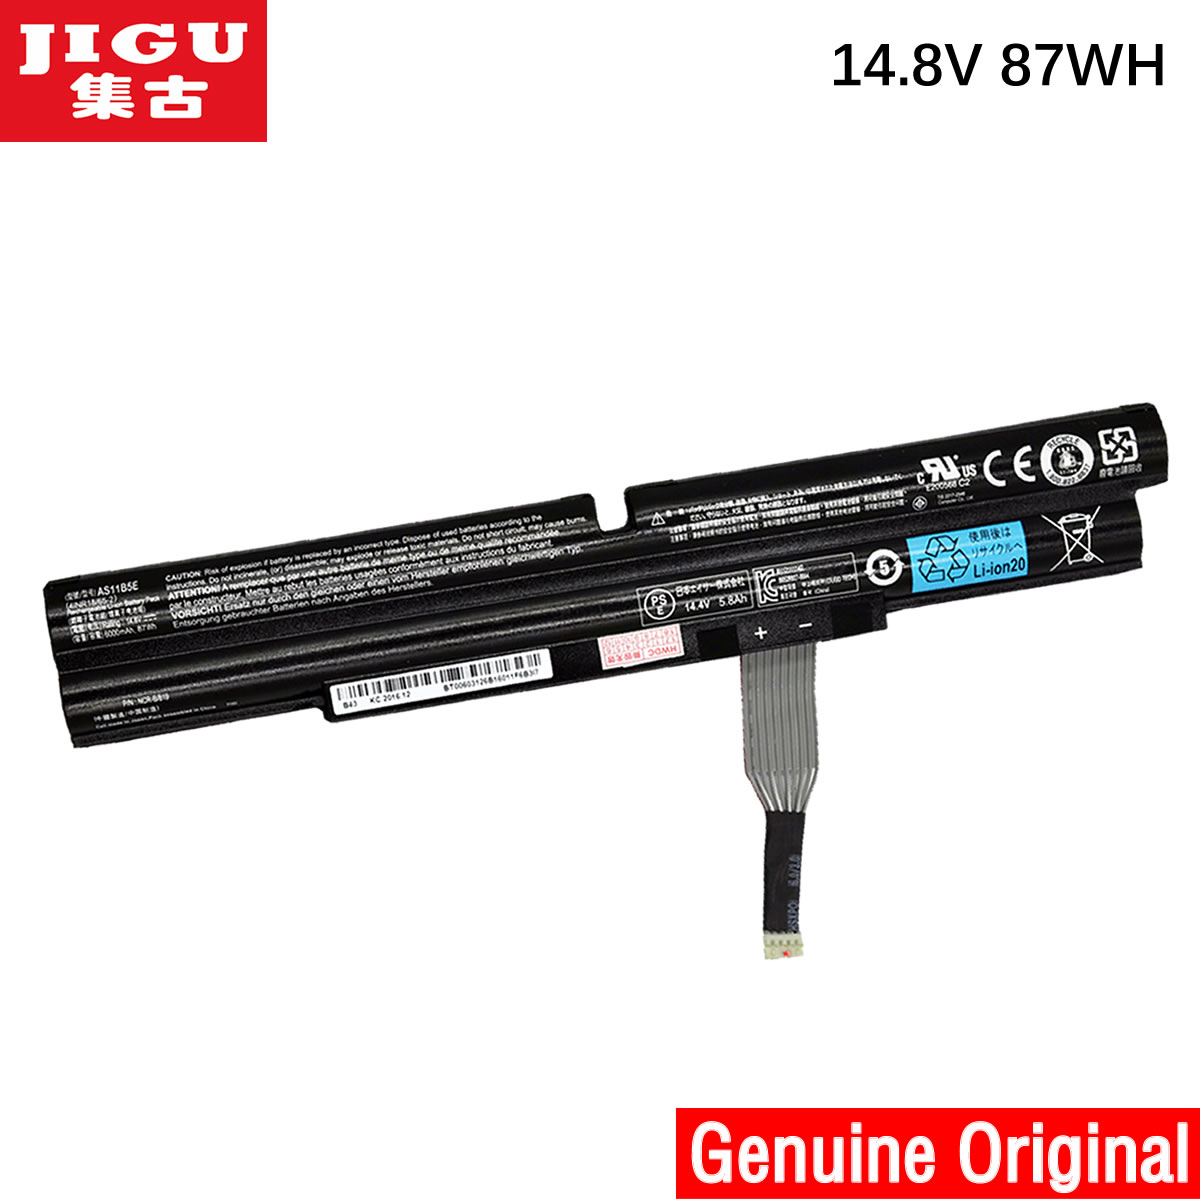 JIGU AS11B5E Original Laptop Battery For Acer Aspire Ethos 5951 8950 8951 5943G 5951G 8943G 8951G 14.8V 87WH pitatel bt 086 аккумулятор для ноутбуков acer aspire 5943g 5950g 8943g 8950g